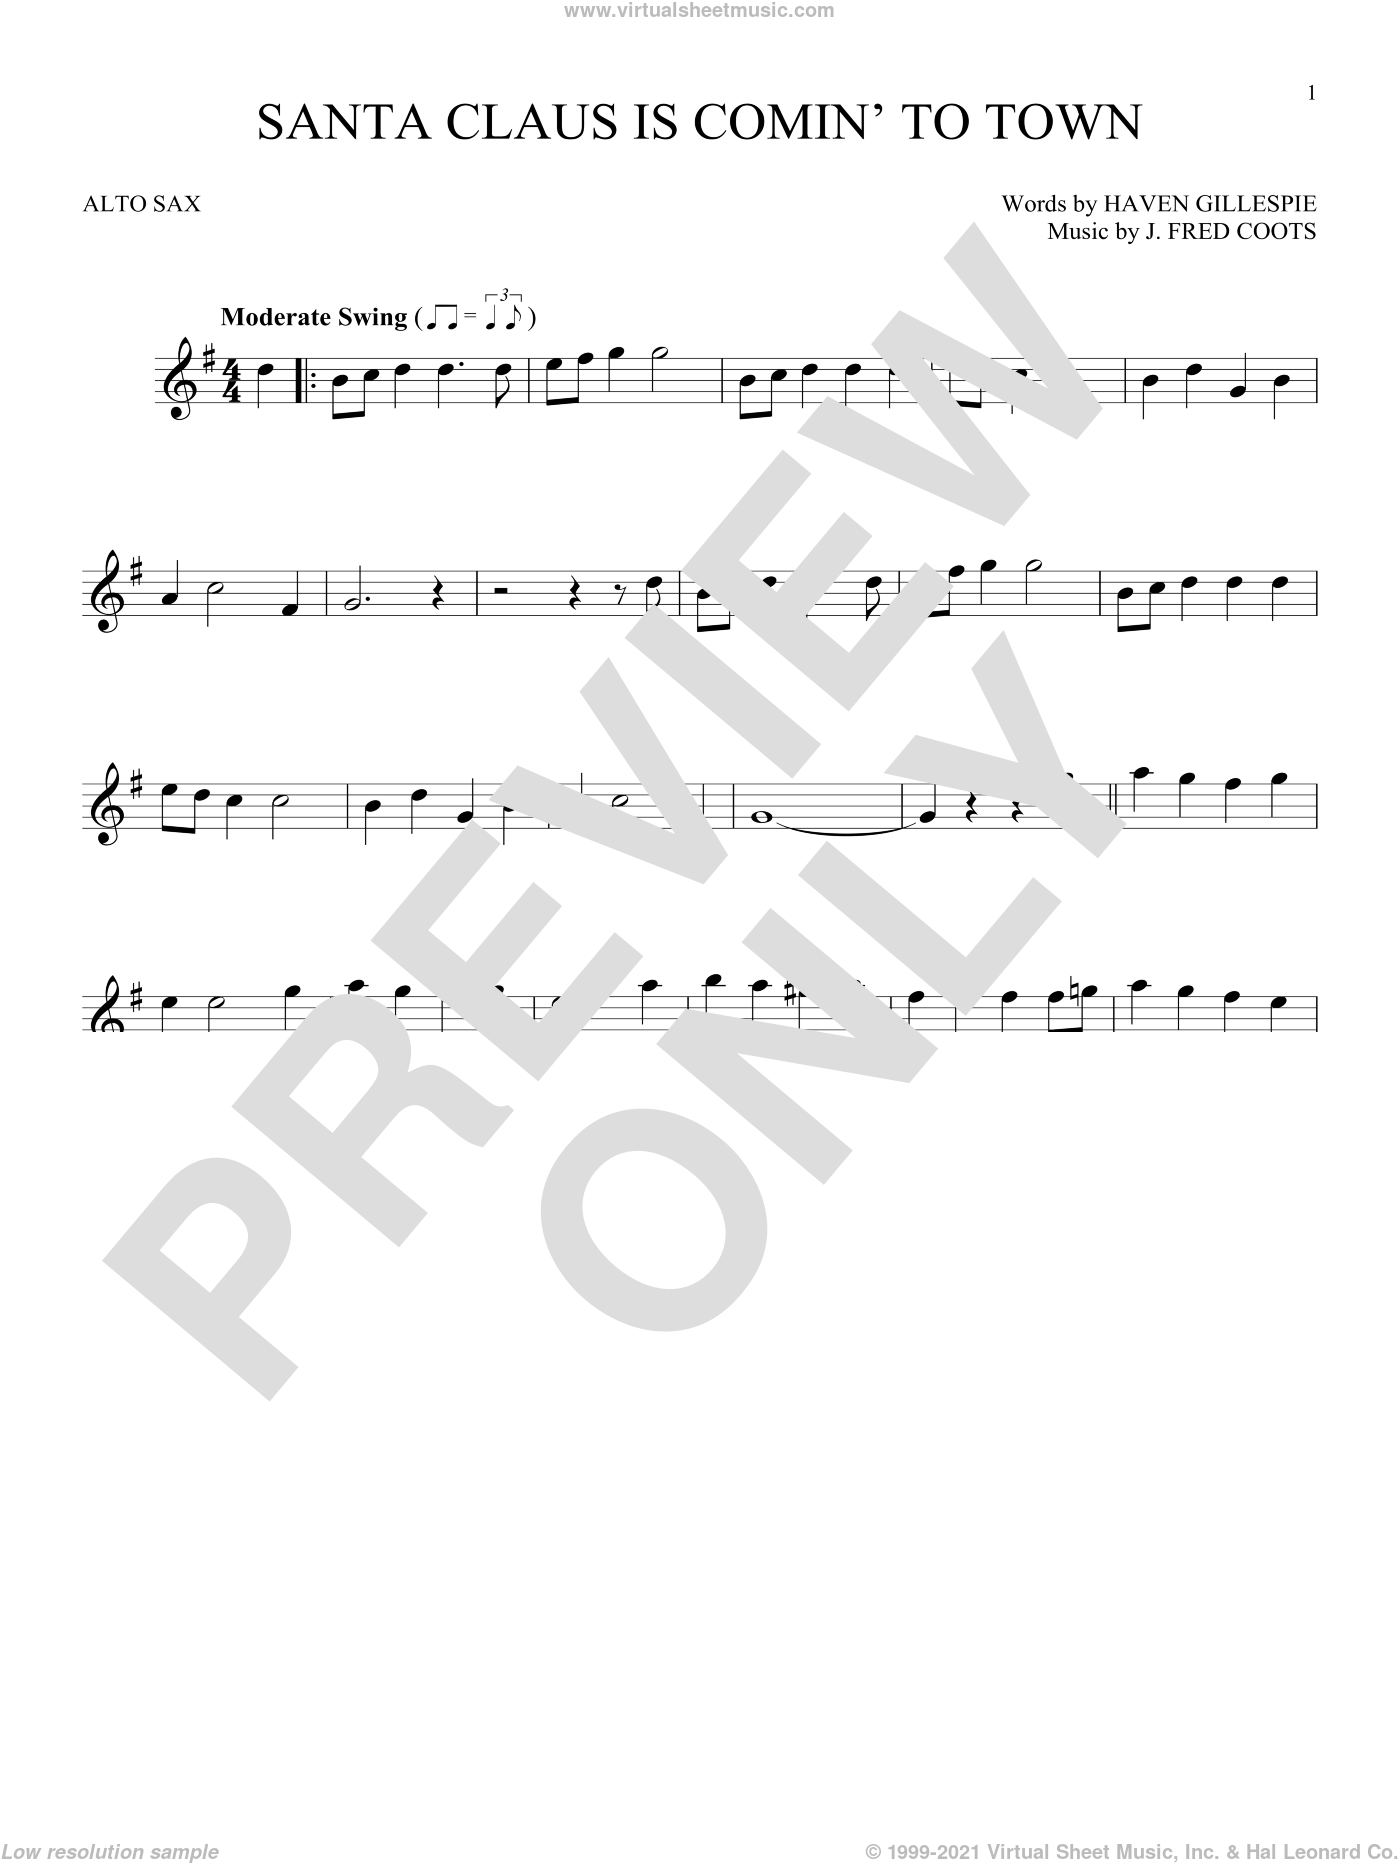 Santa Claus Is Comin' To Town sheet music for alto saxophone solo by J. Fred Coots and Haven Gillespie, intermediate skill level